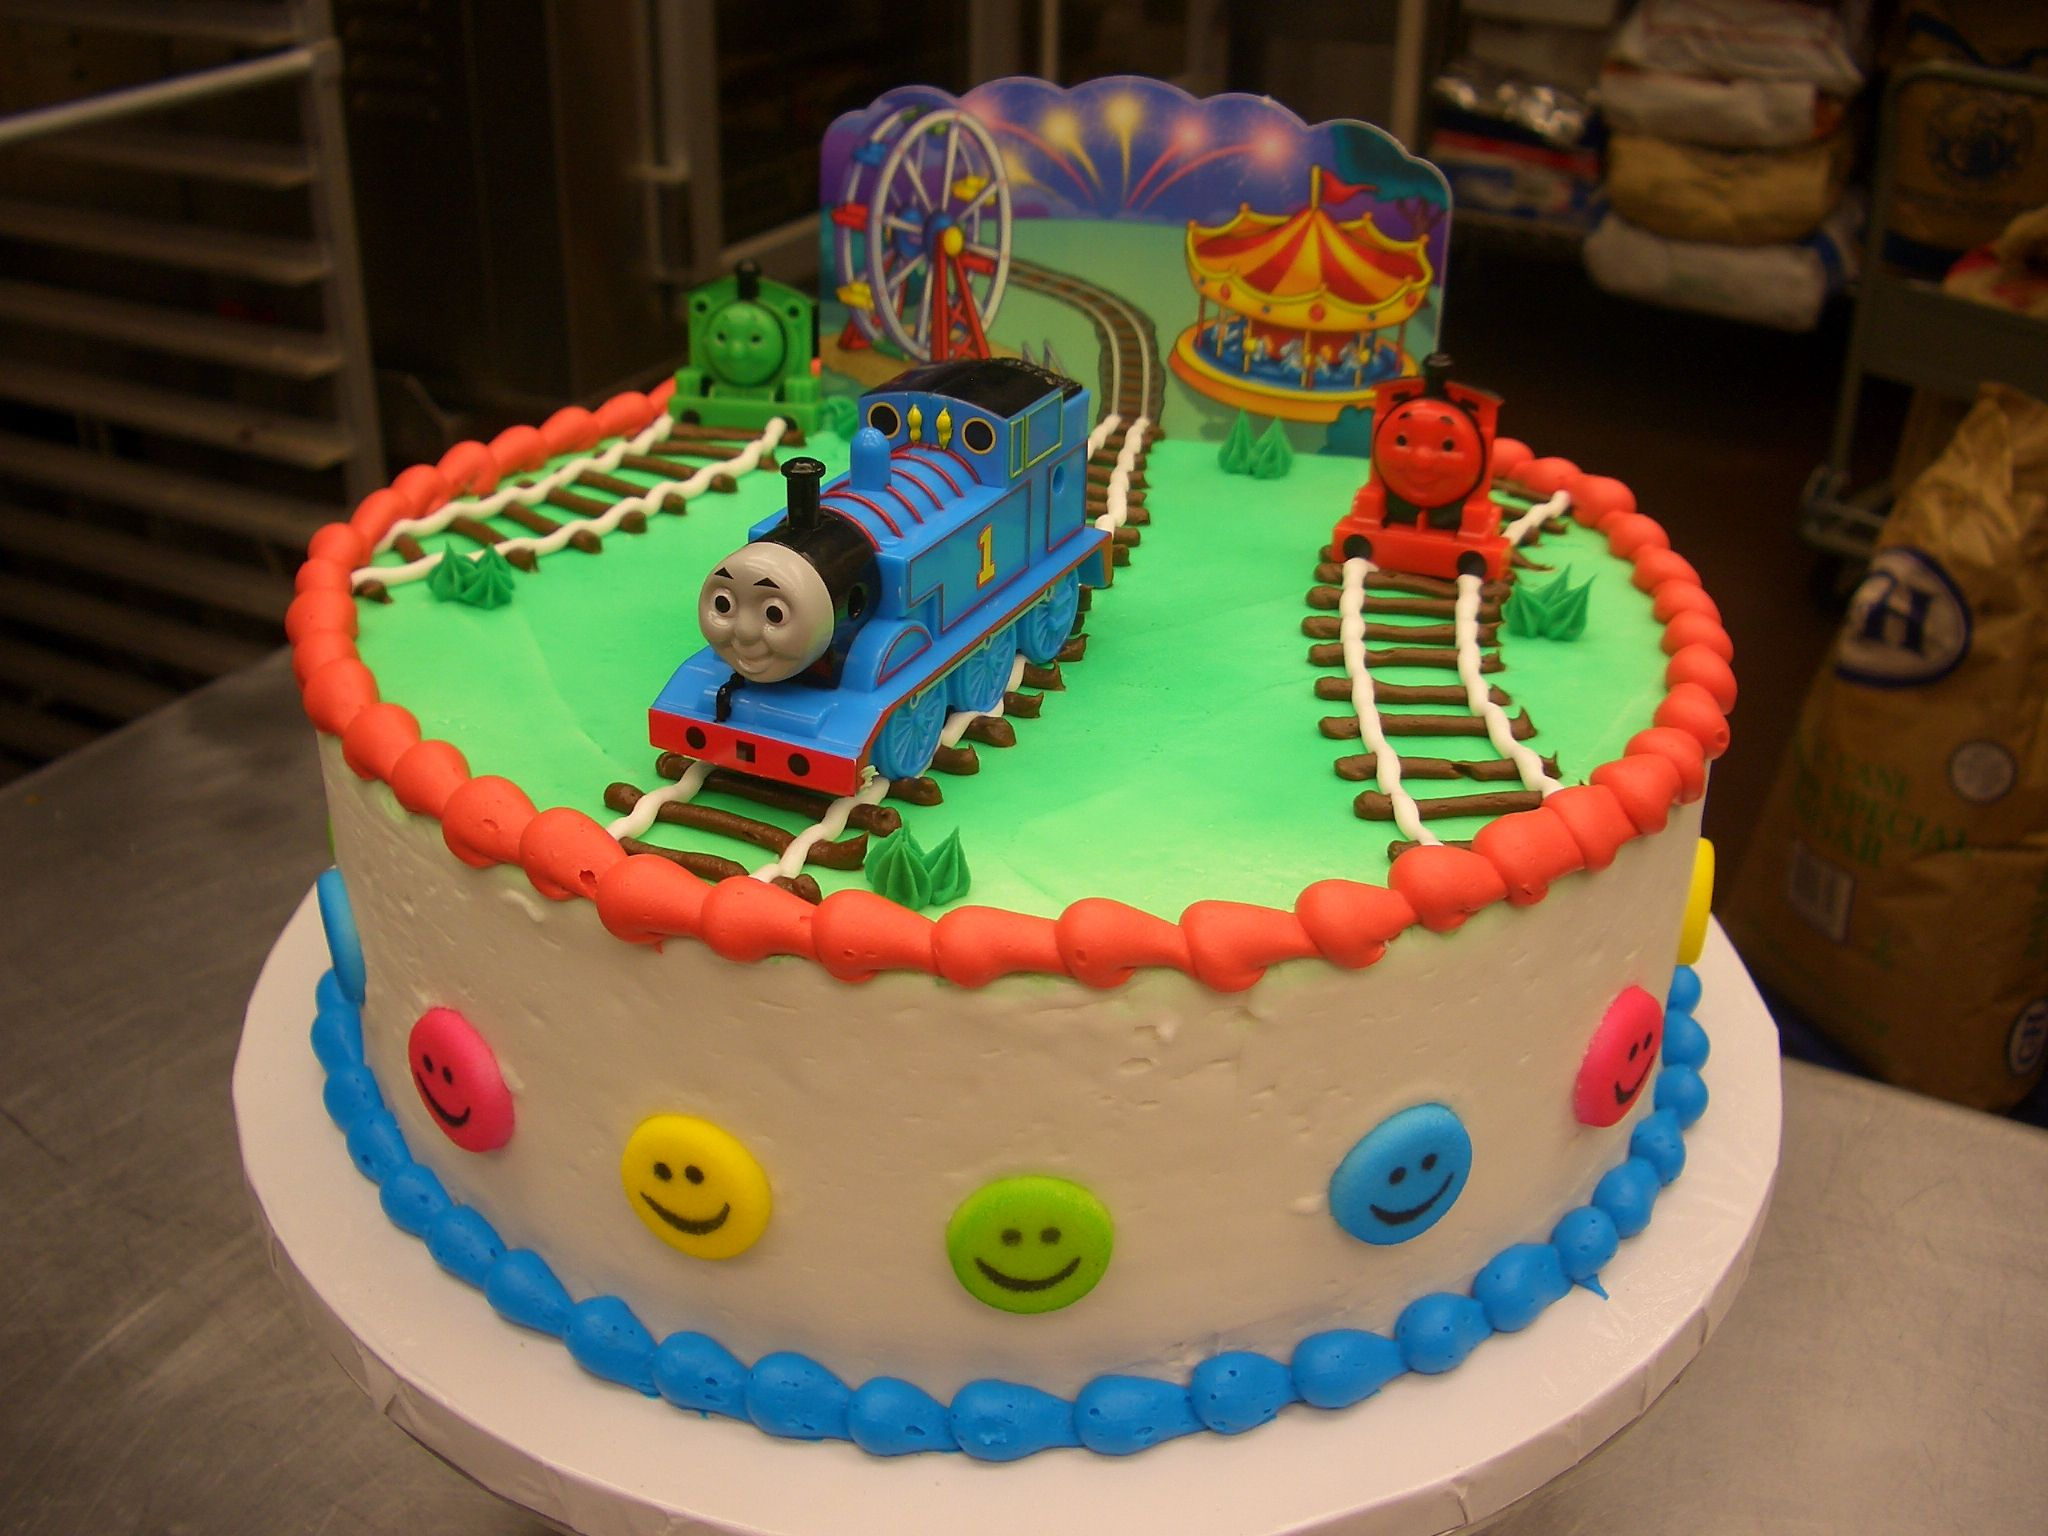 Thomas The Train Cake Idea For Chayton S Birthday